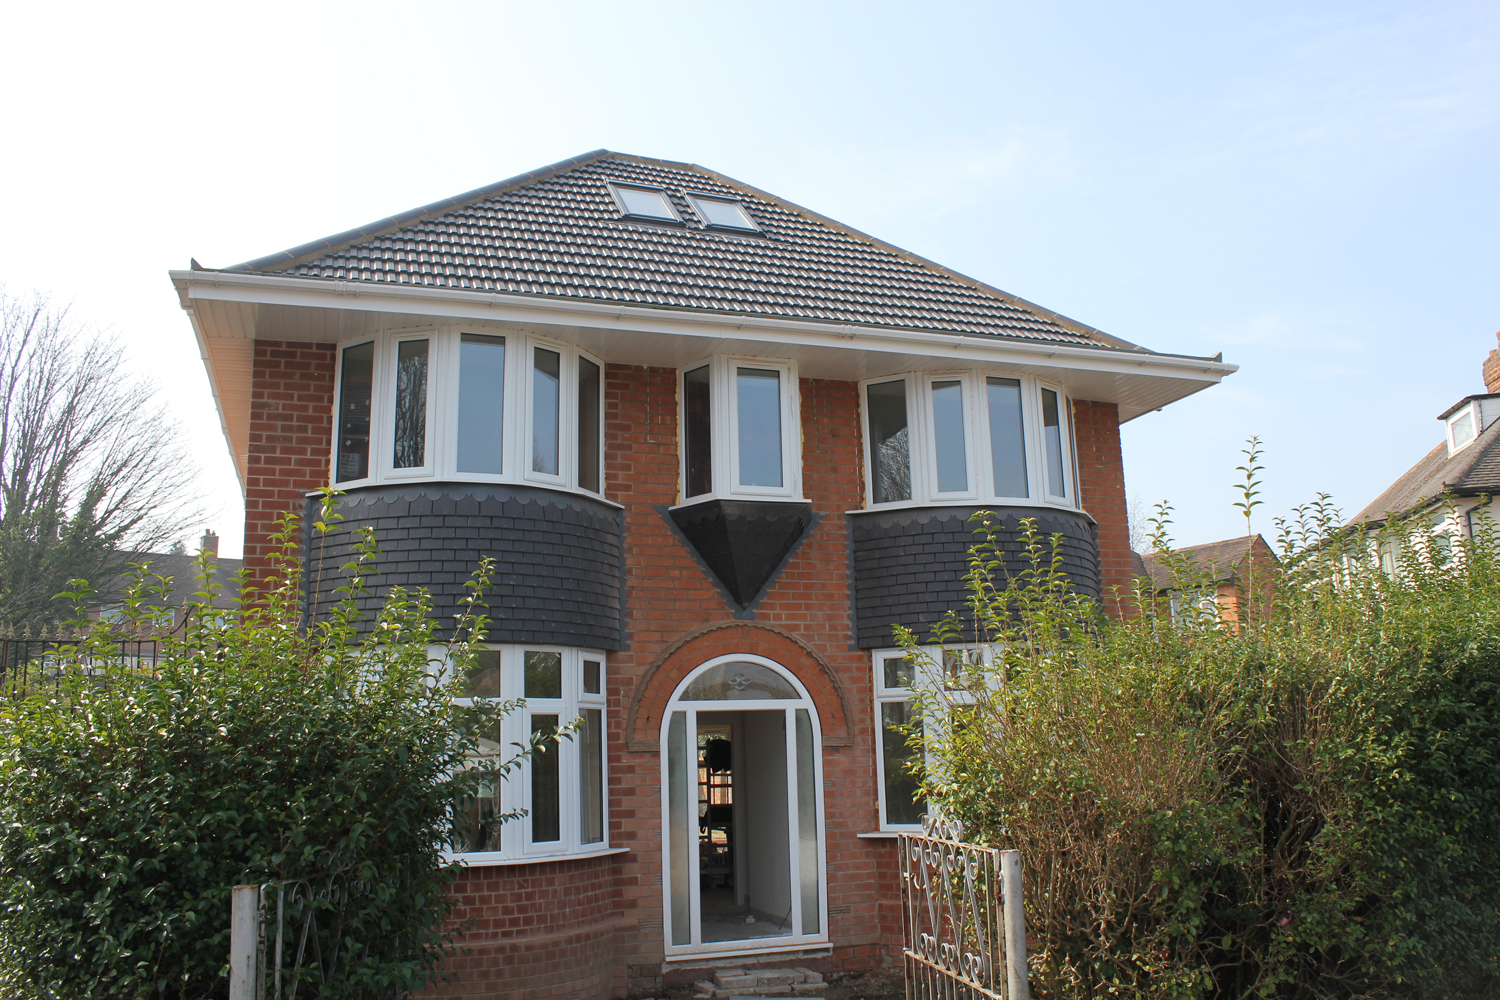 1930's detached house - side two storey extension